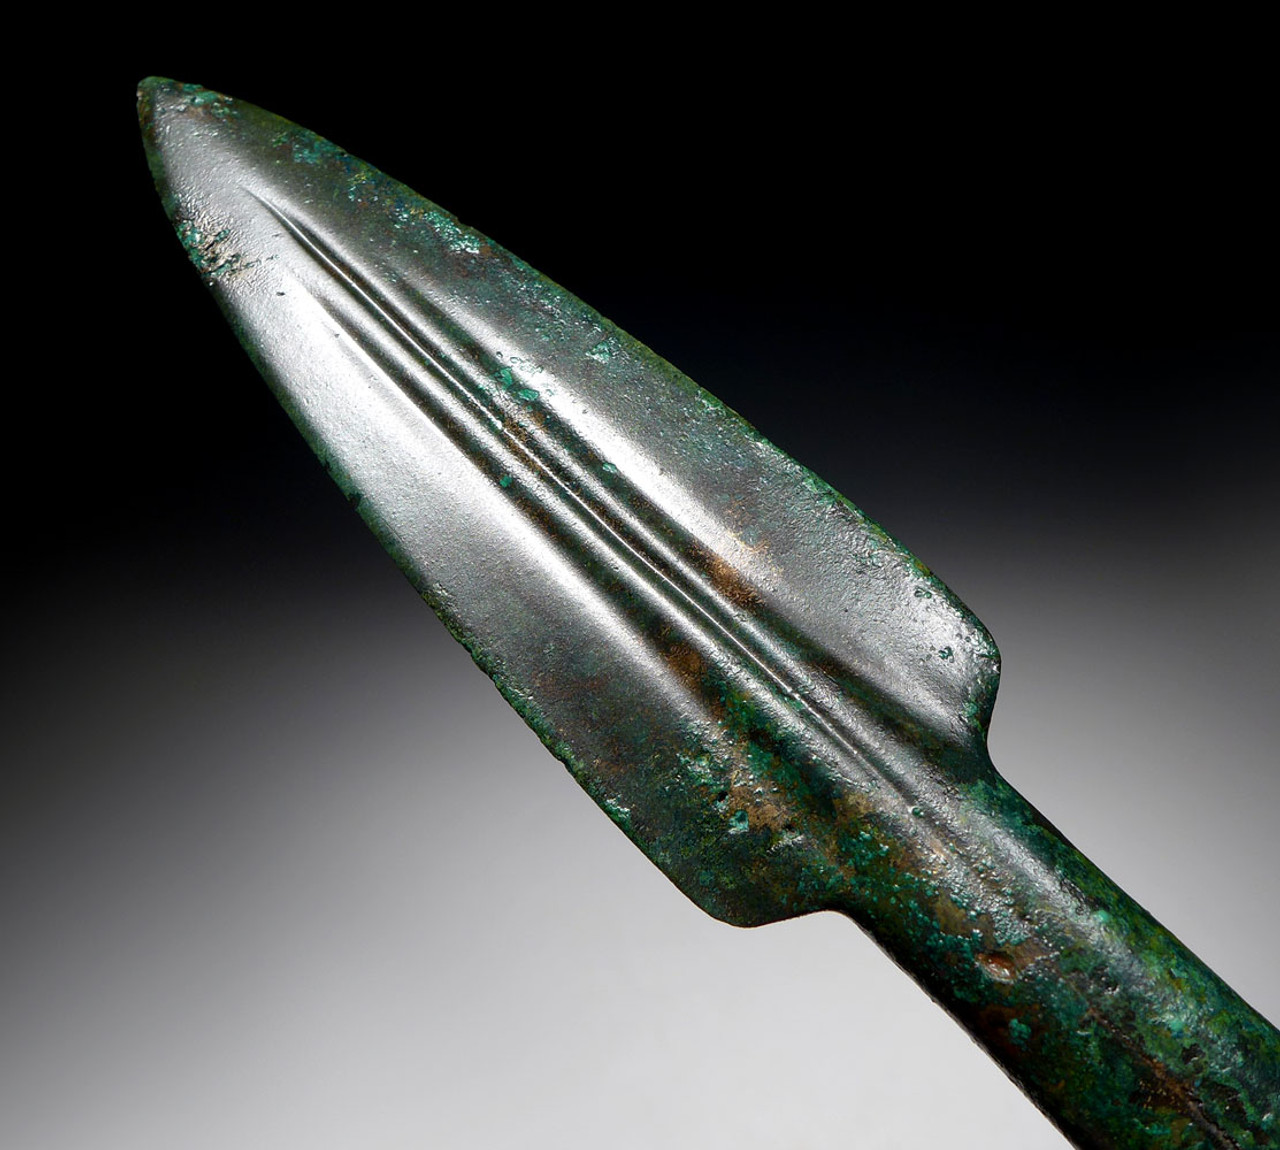 FINEST ANCIENT ACHAEMENID BRONZE THROWING JAVELIN SPEARHEAD FROM THE FIRST PERSIAN EMPIRE  *NE220